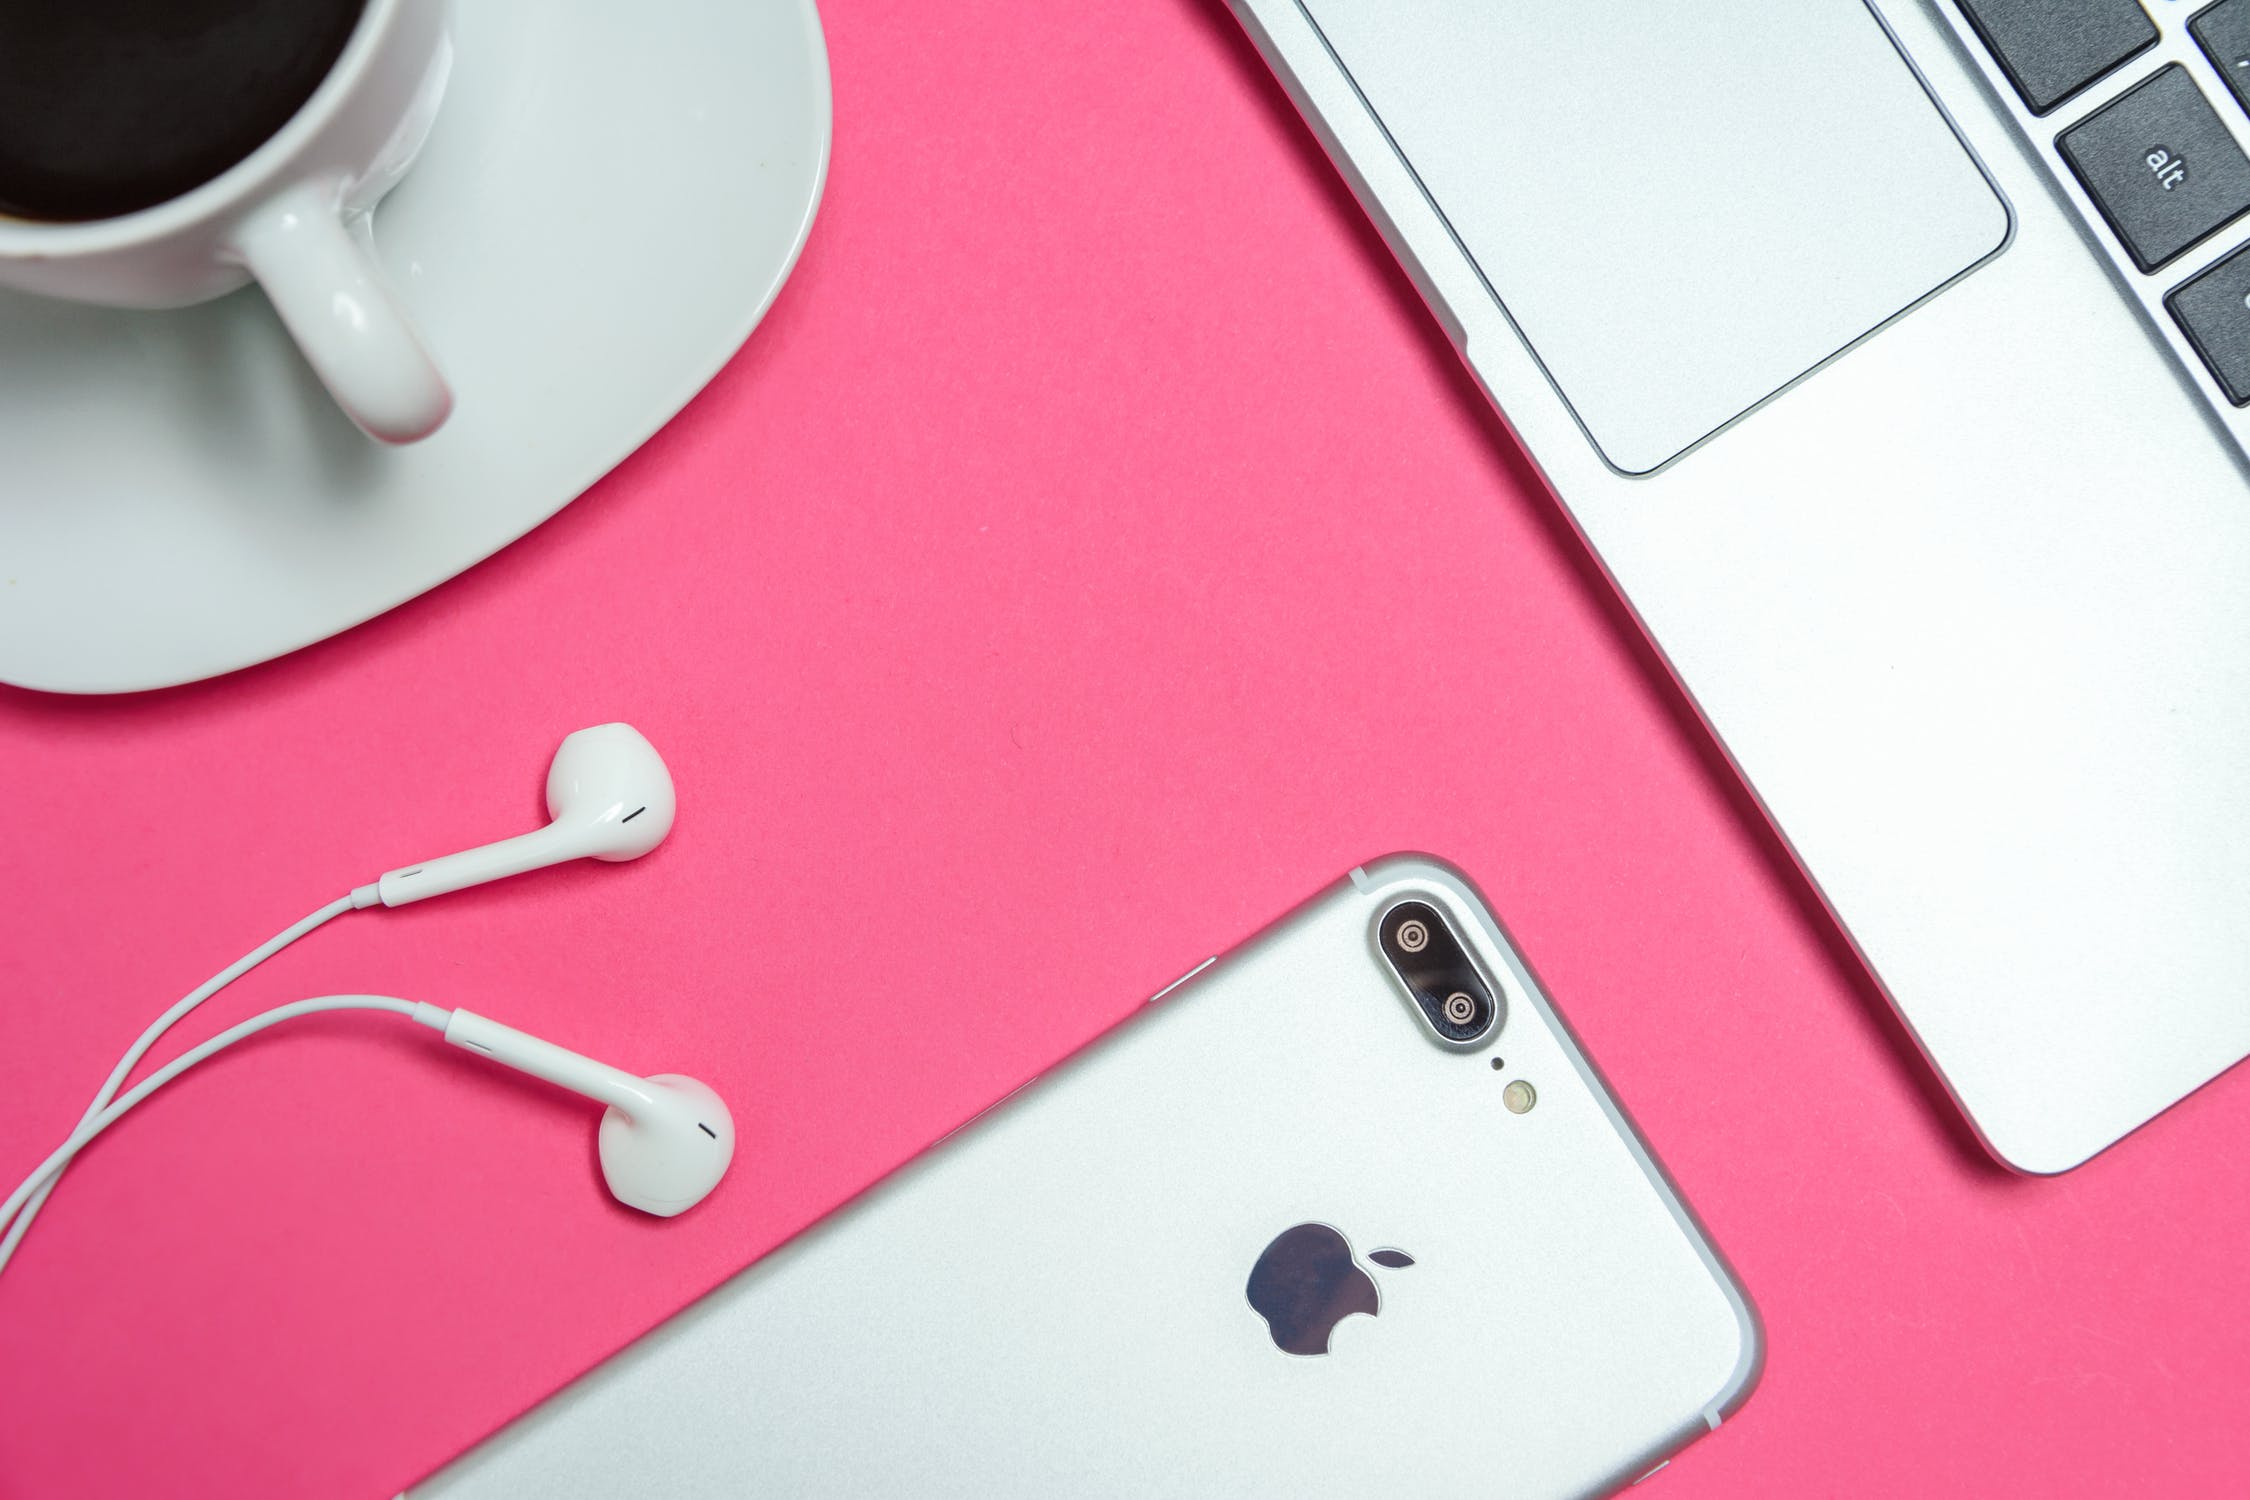 pexels photo 1038628 1 - Everything You Need To Know About the Upcoming Iphones!